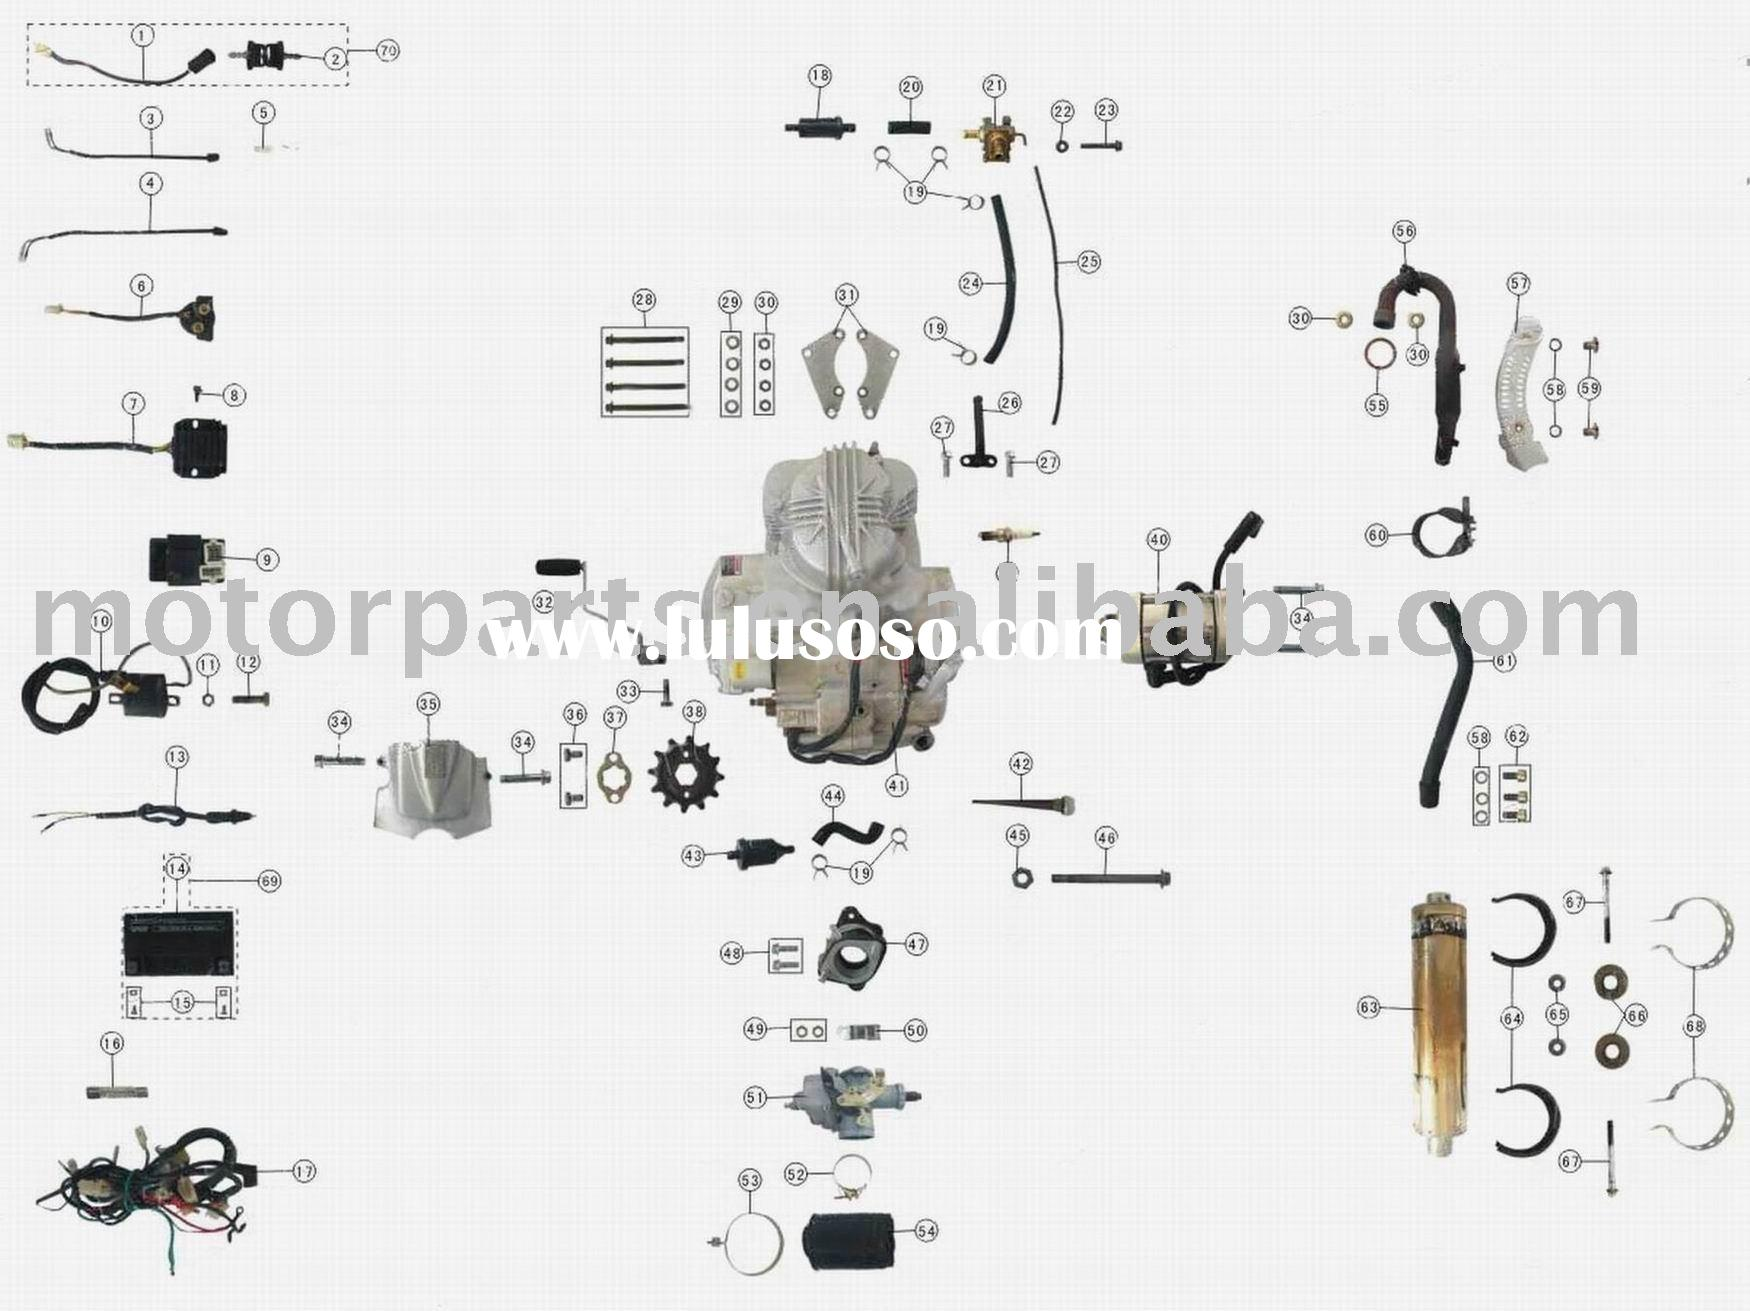 86 Cc Loncin Atv Wiring Diagram on bmx atv wiring harness